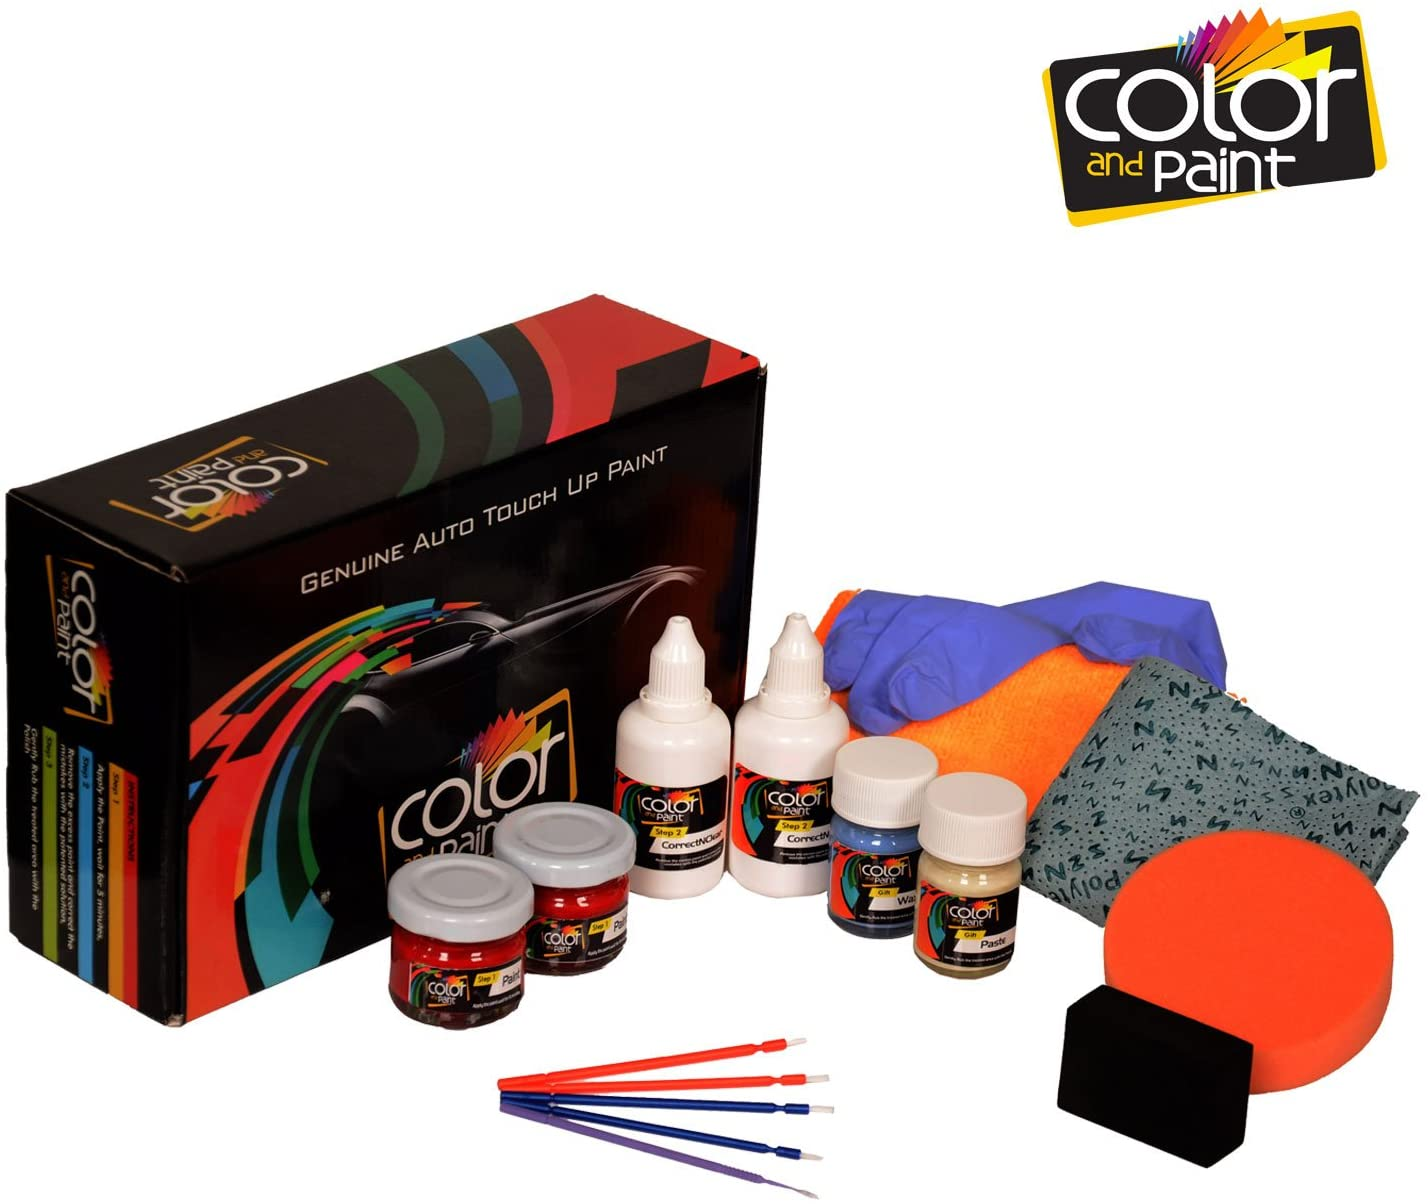 Jaguar X-Type/Porcelain Surfacer - JUC98 / Color and Paint Touch UP Paint System for Paint Chips and Scratches/PRO Care